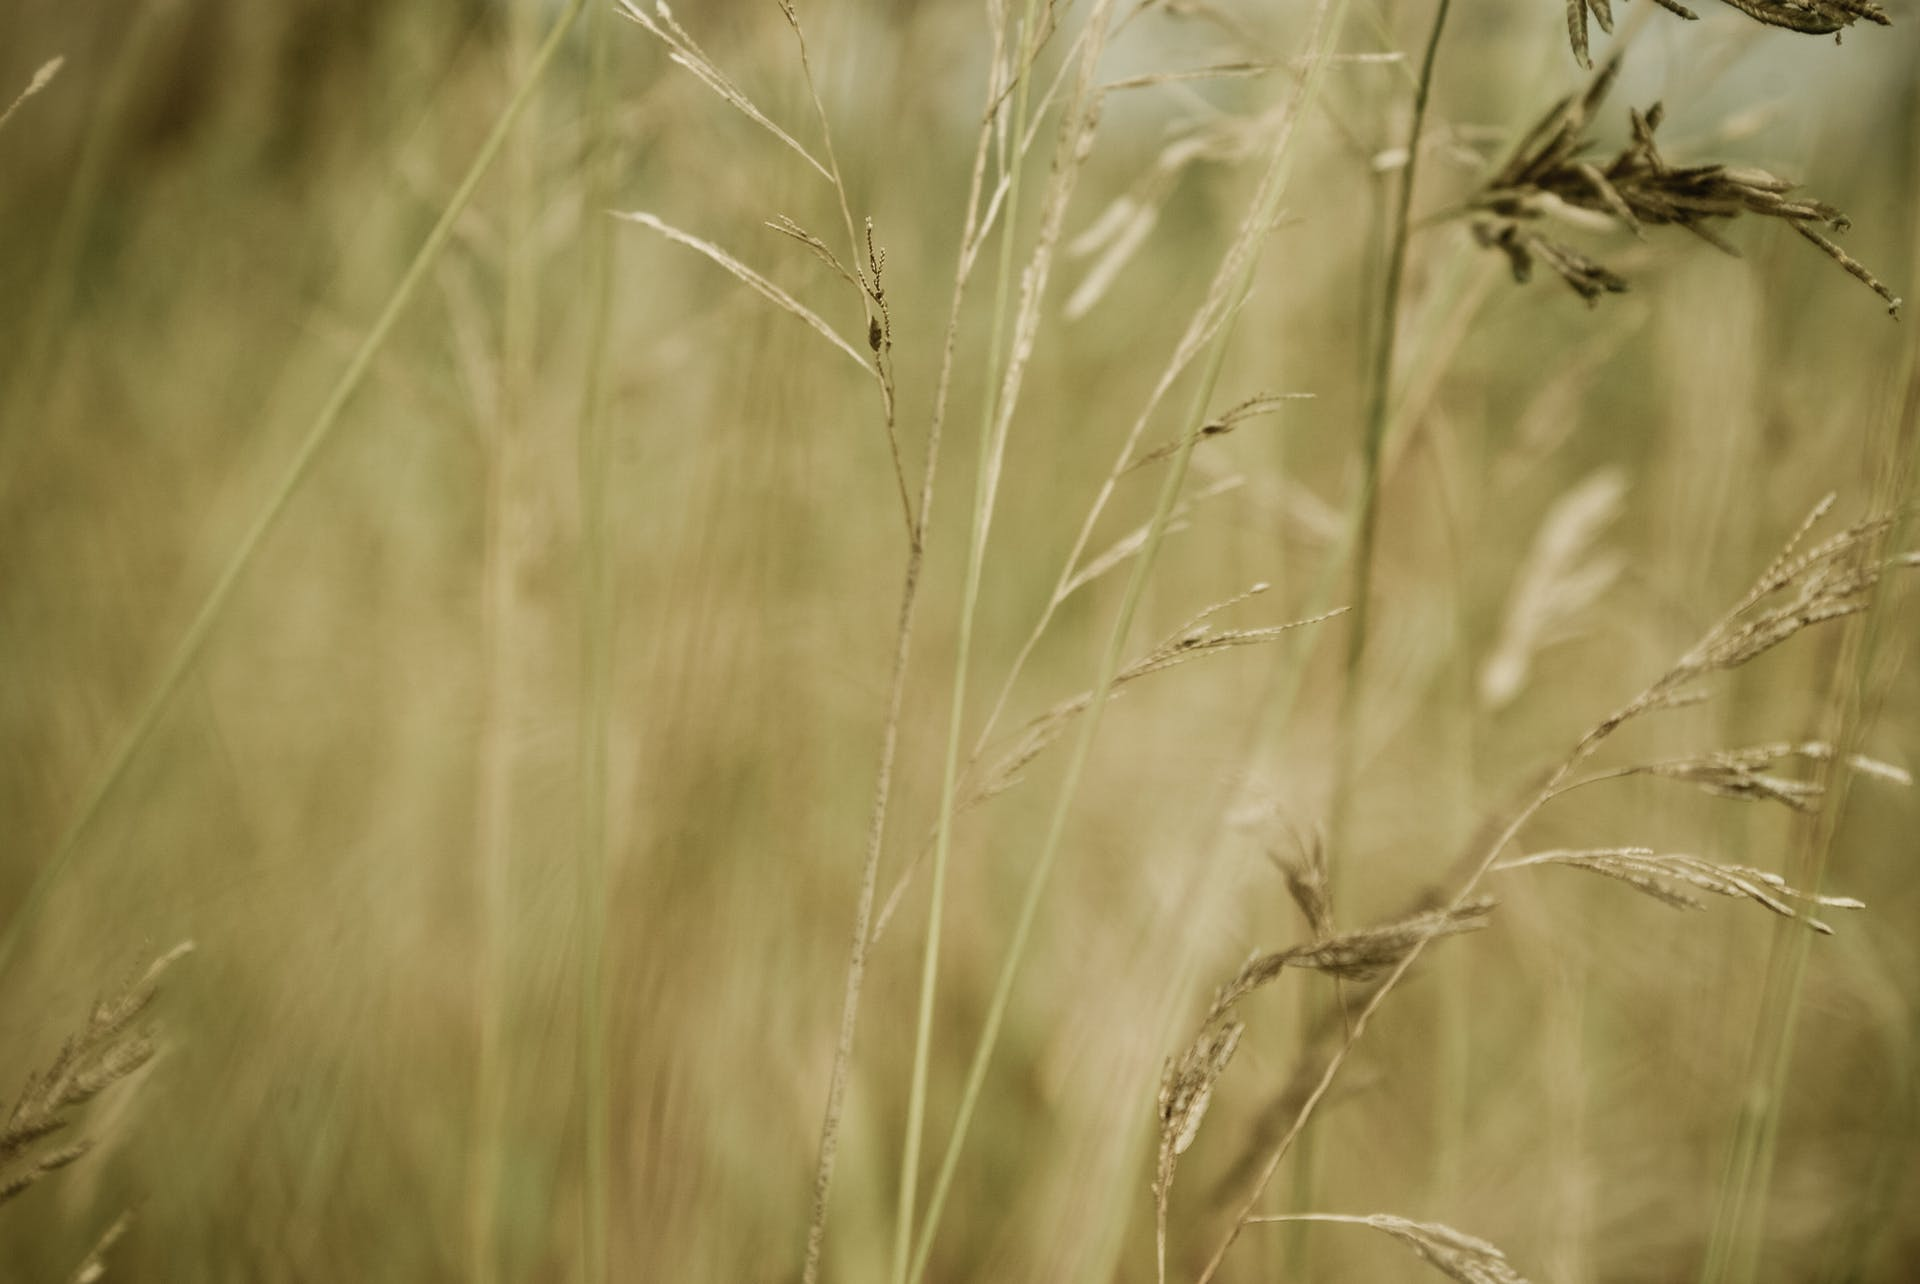 nature macro photo background field blur brown grass bulb focus